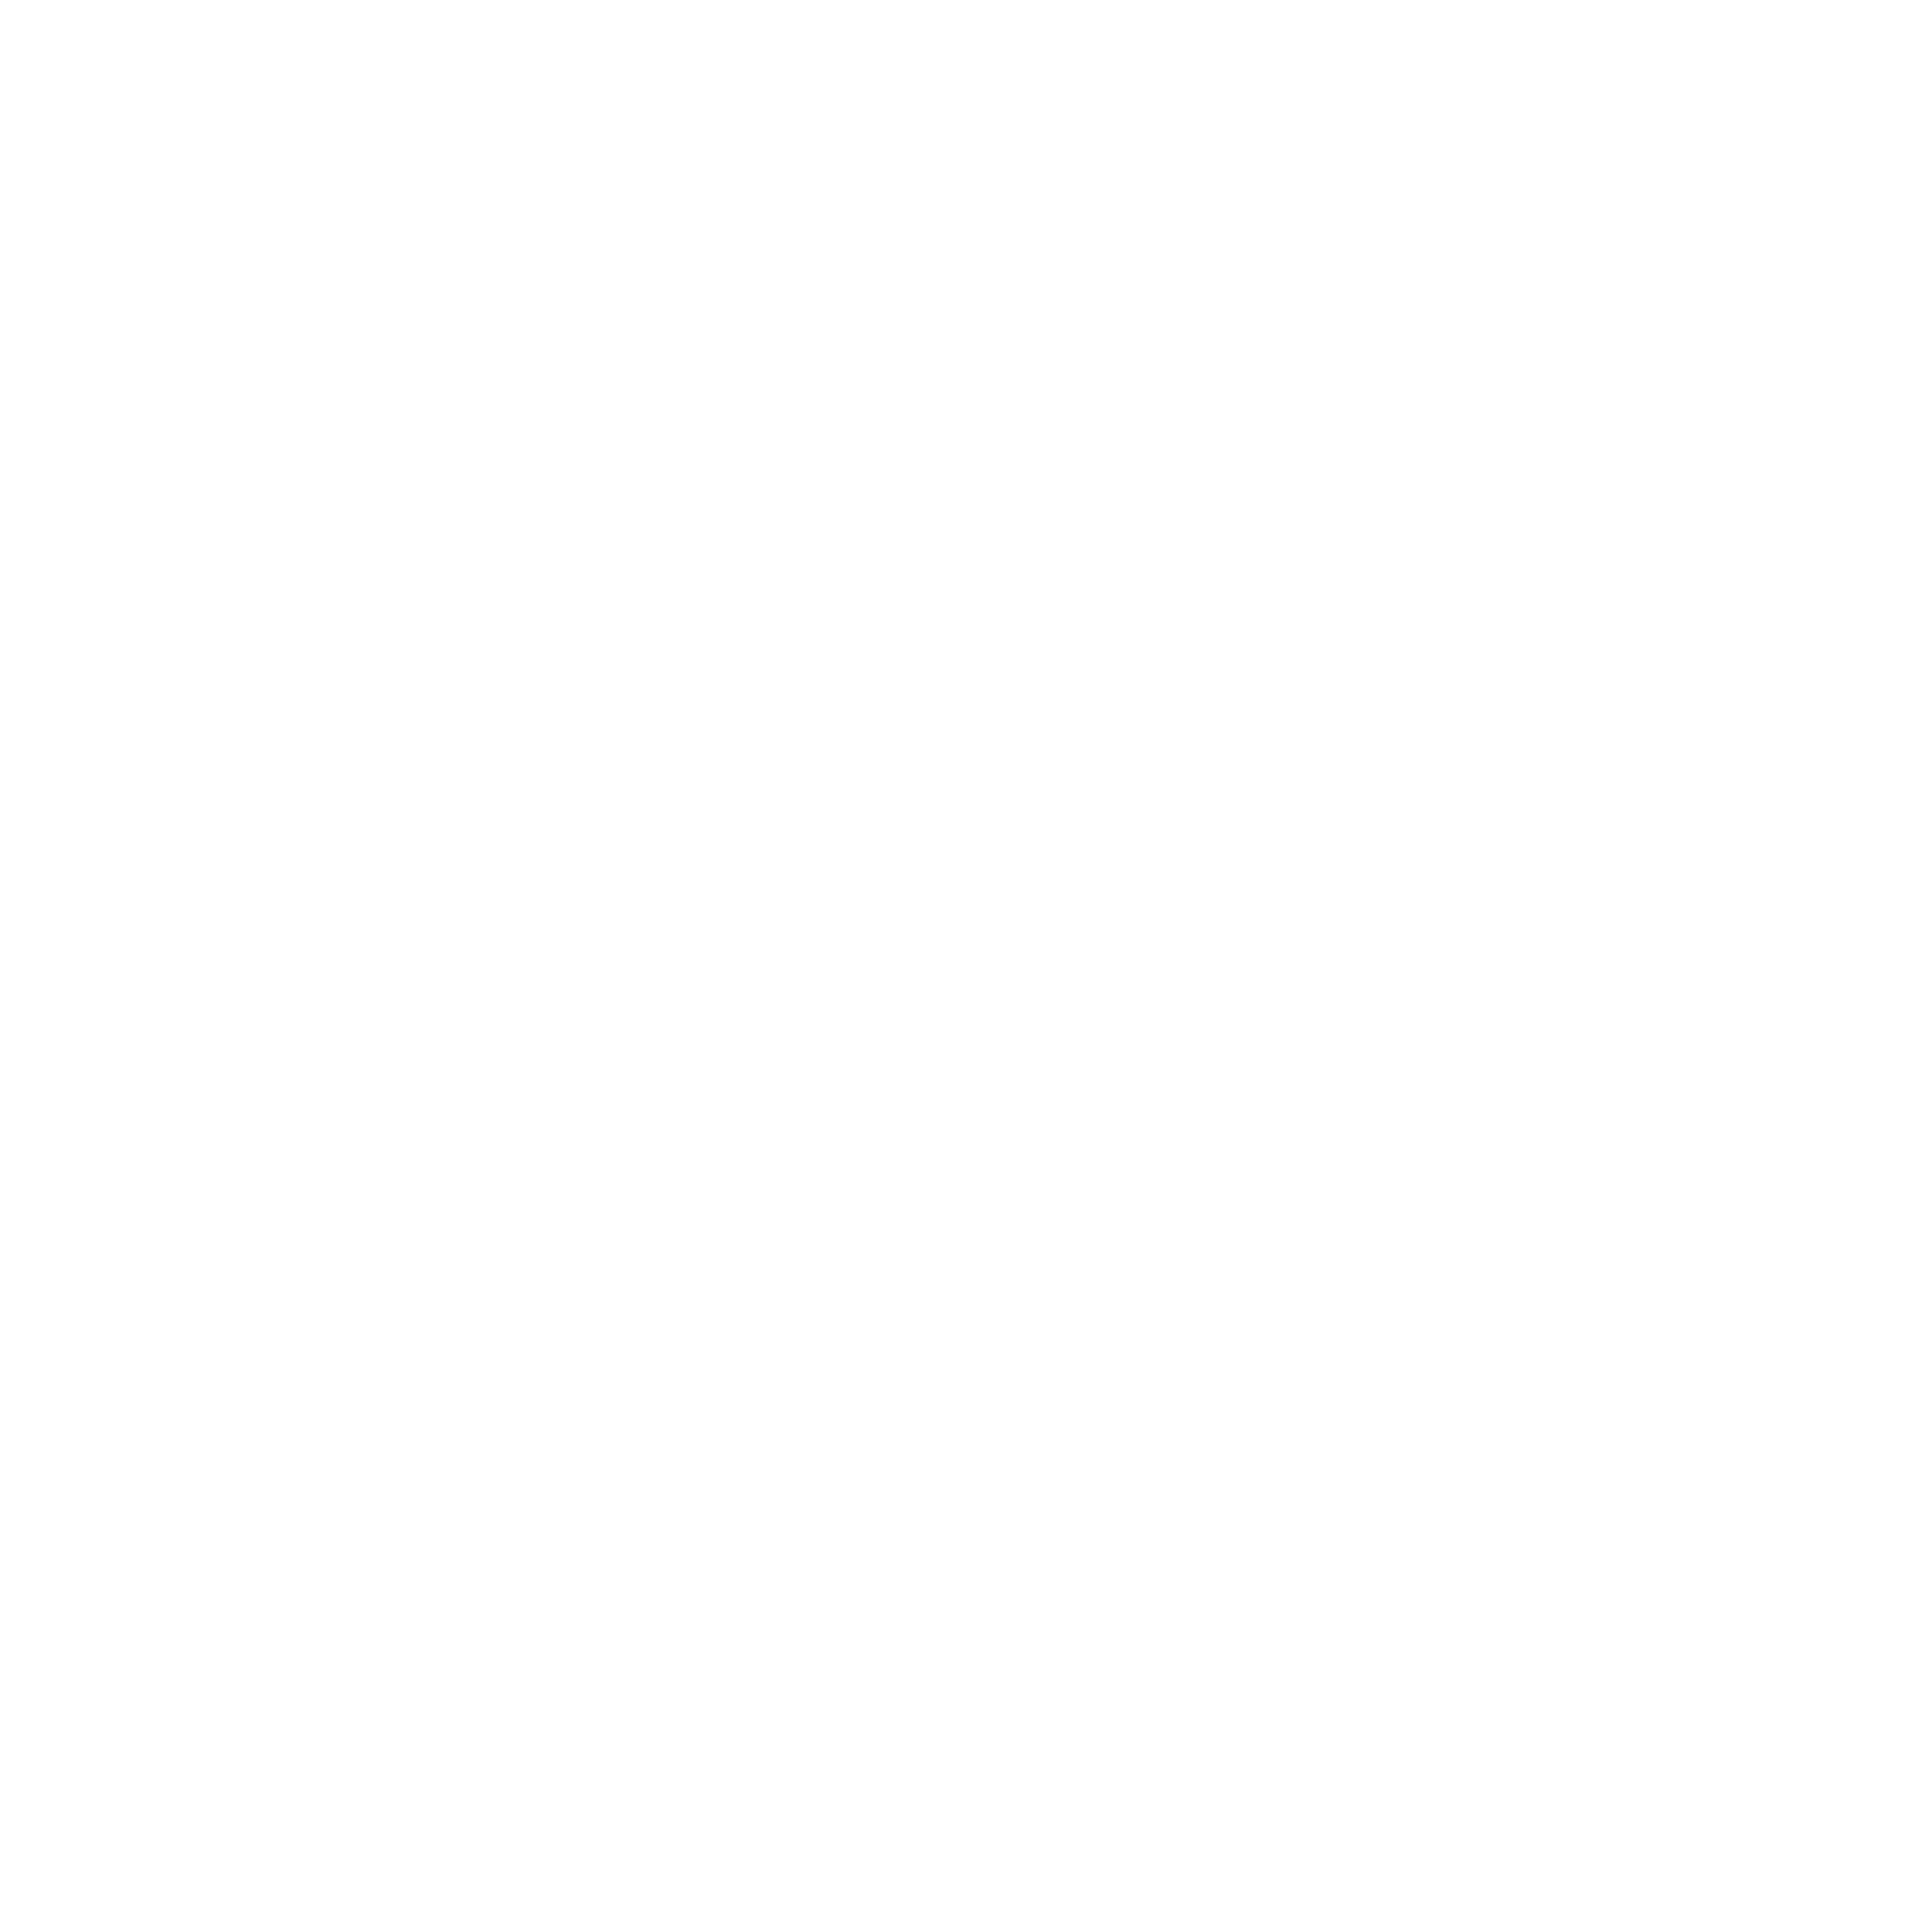 The Hourglass Vintage